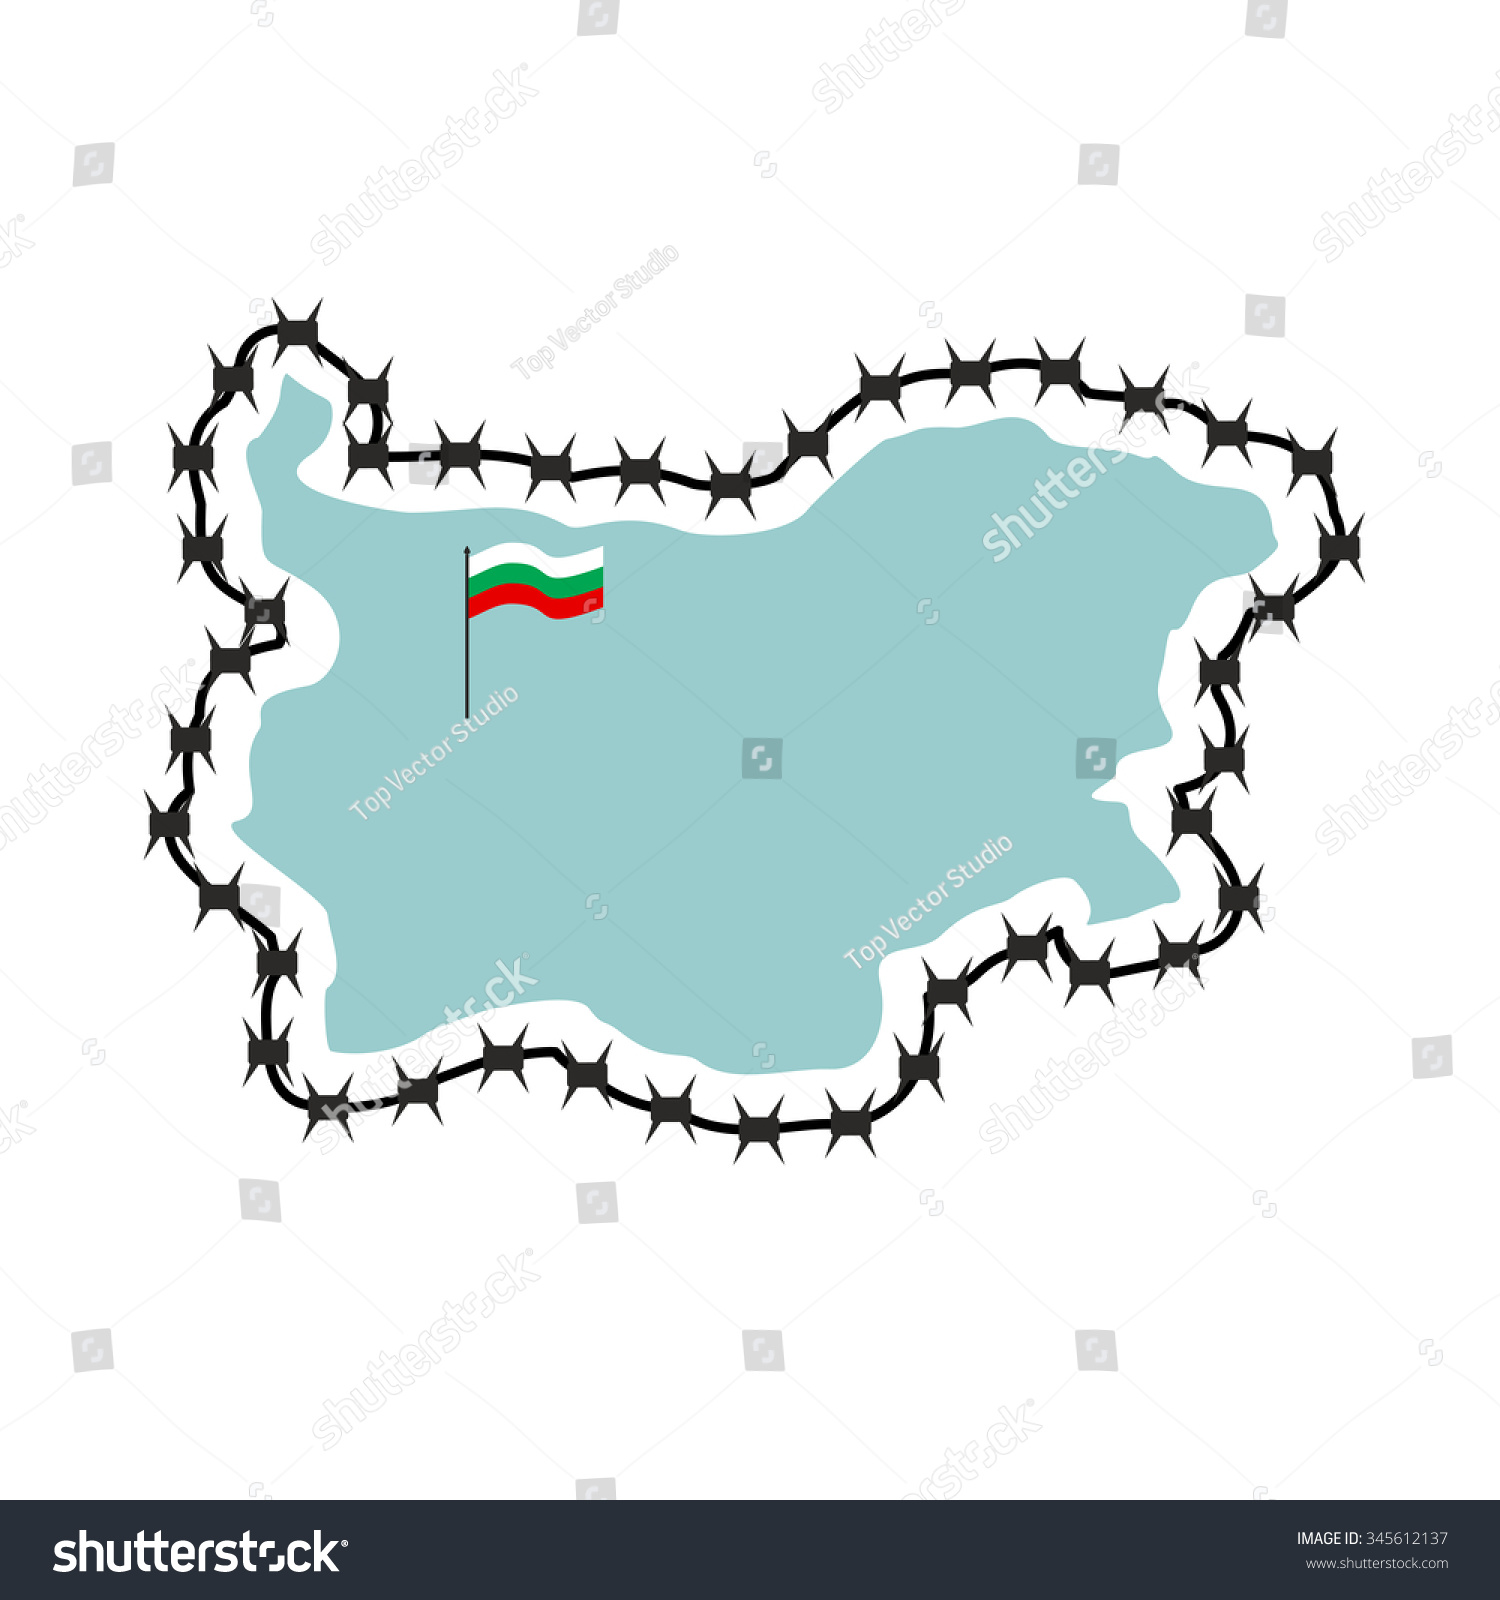 Royalty Free Stock Illustration of Map Bulgaria Map States Barbed ...